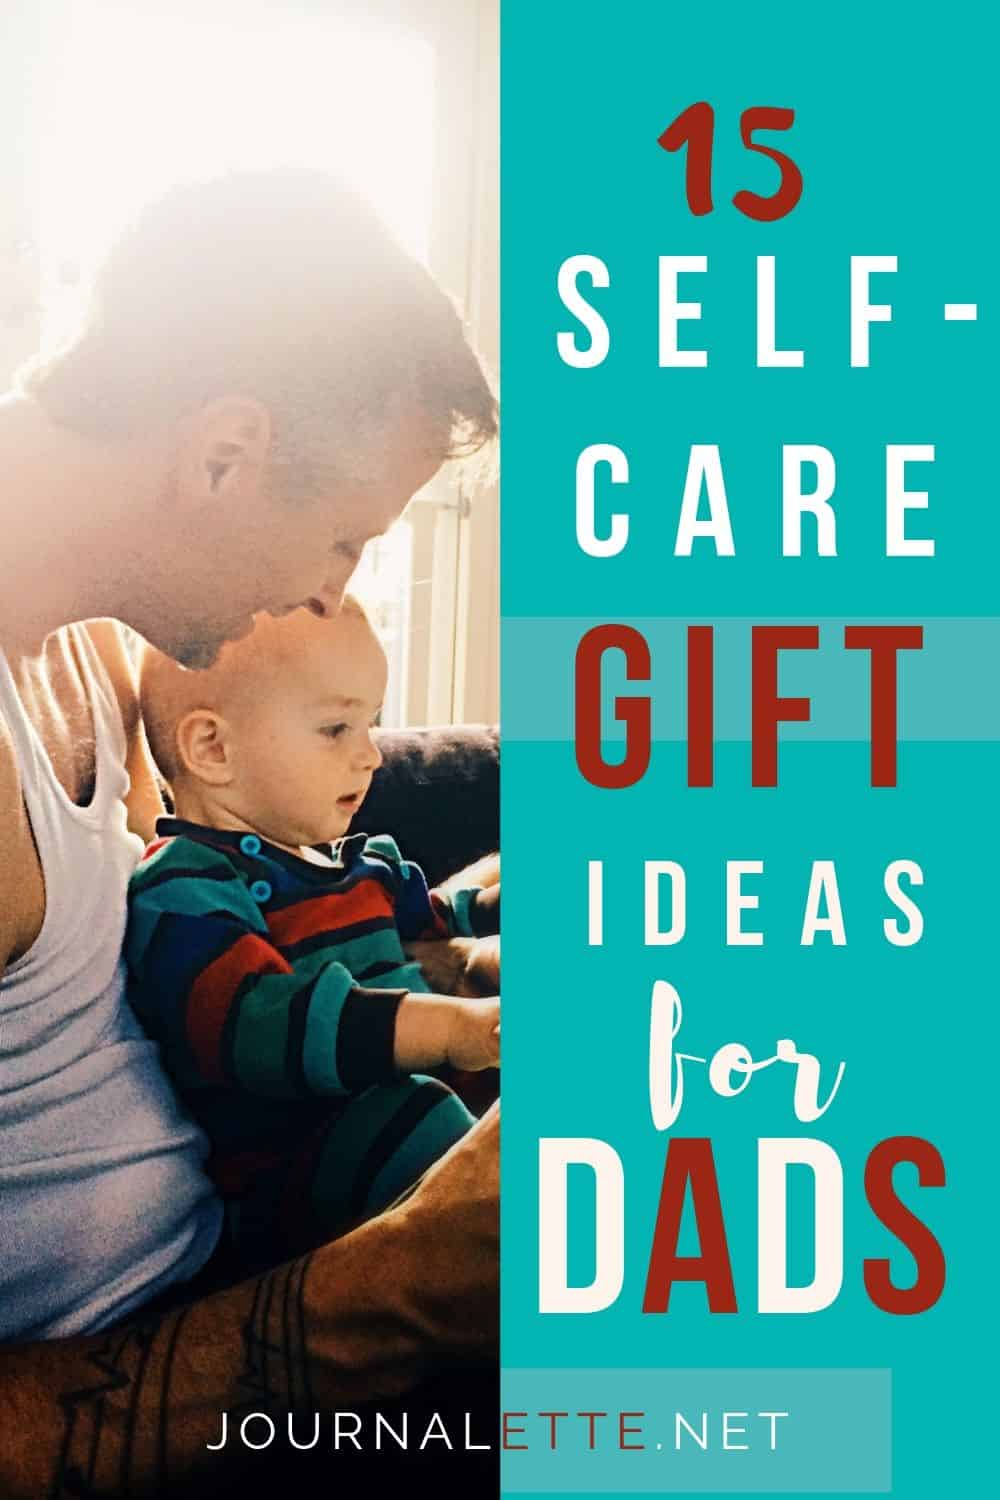 Image of person with child and text box 15 self care gift ideas for dads